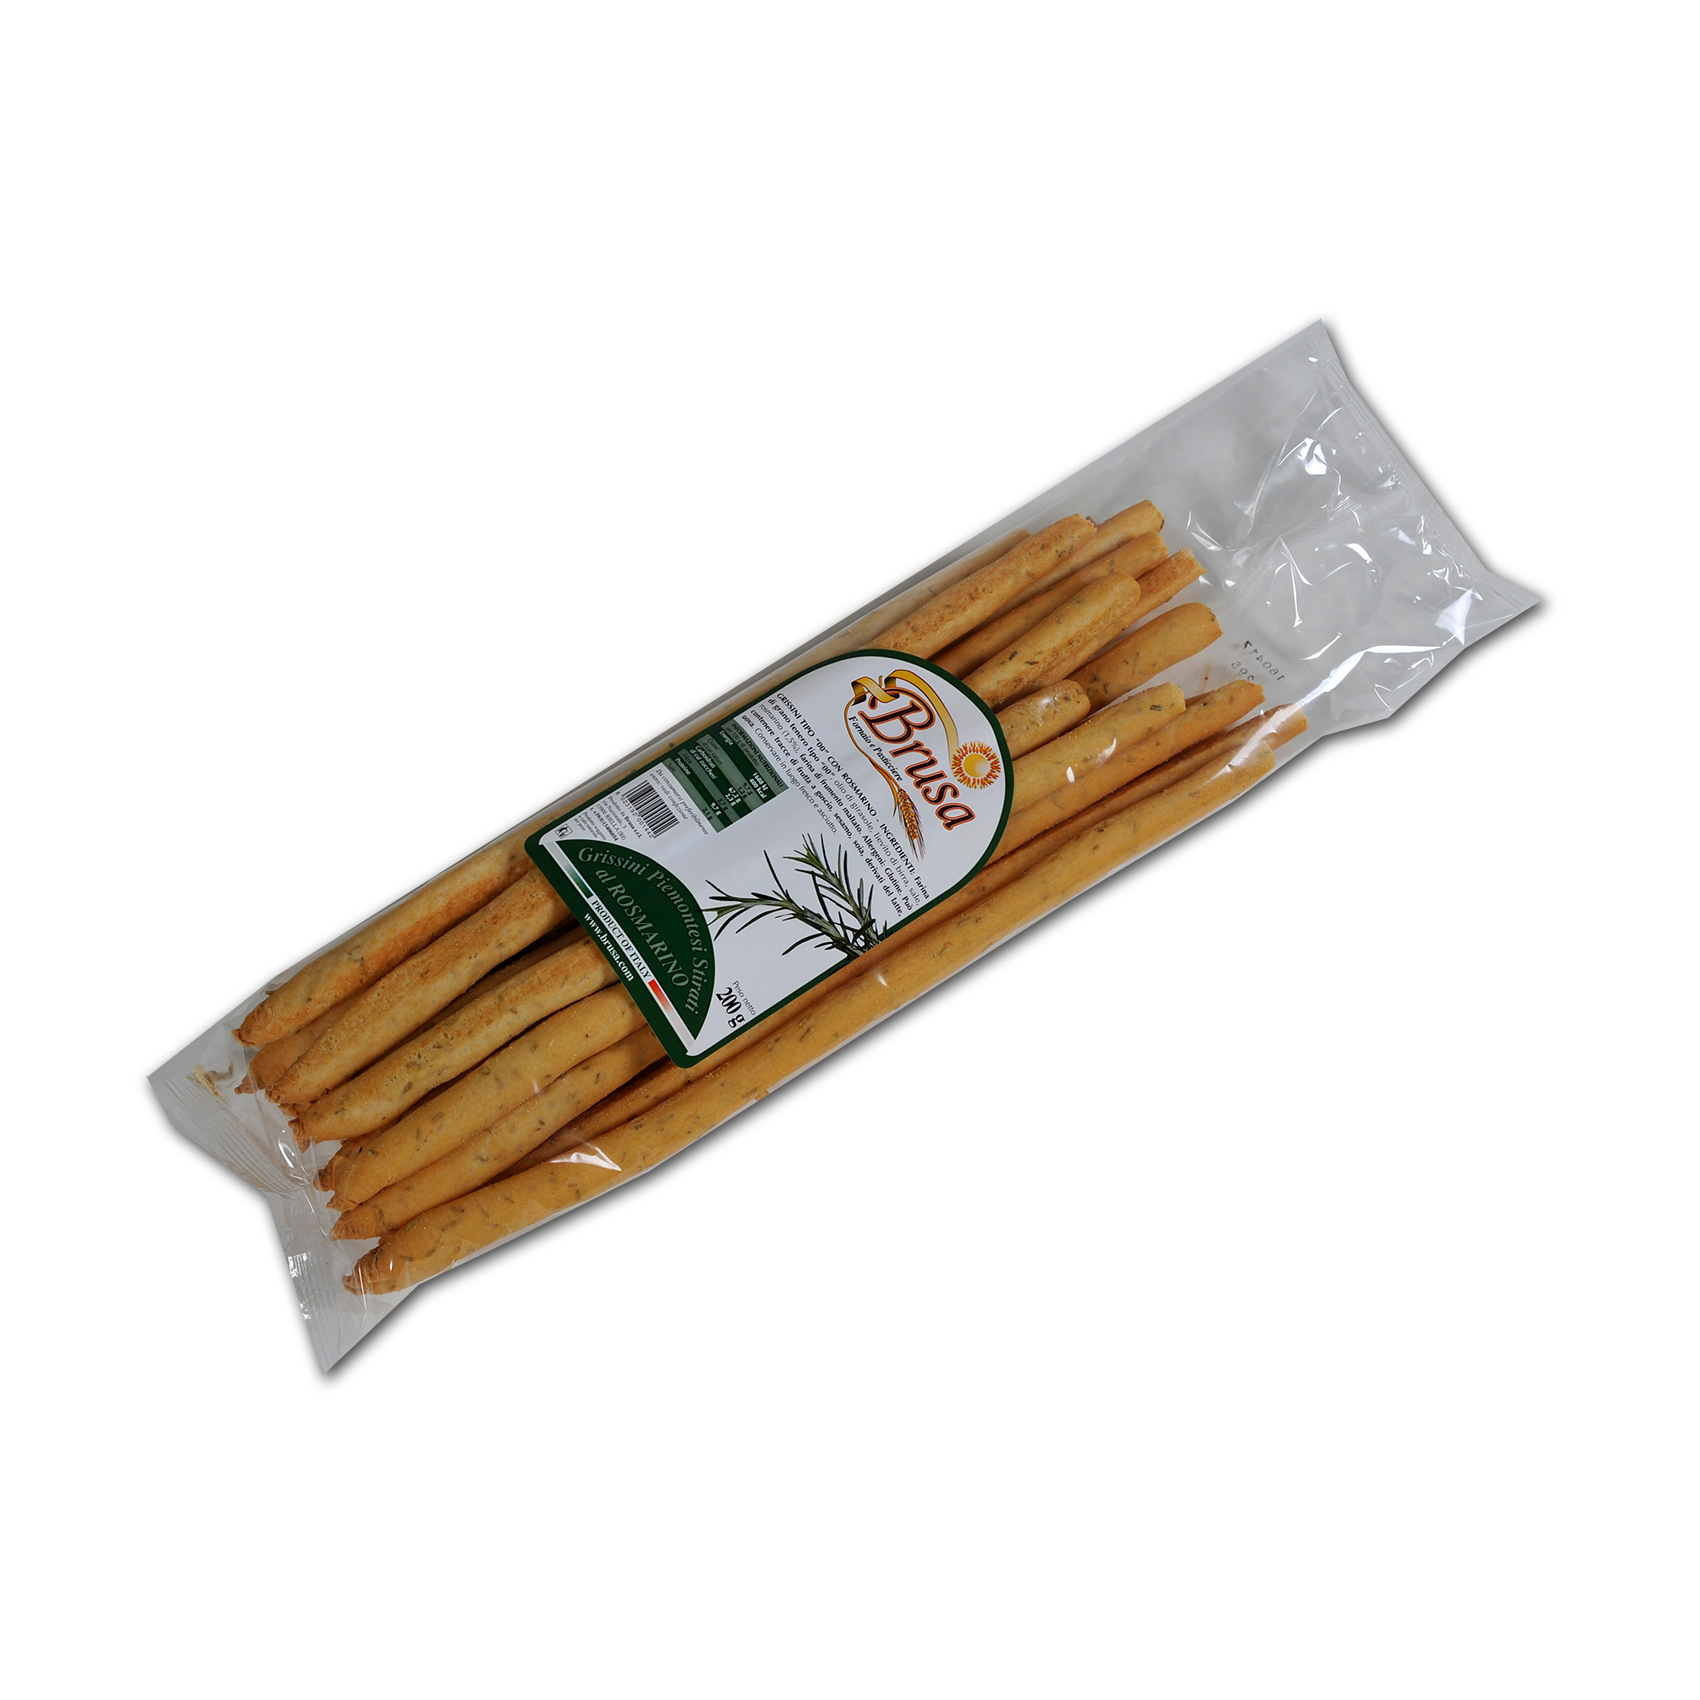 piedmontese-rosemary-breadsticks-200g